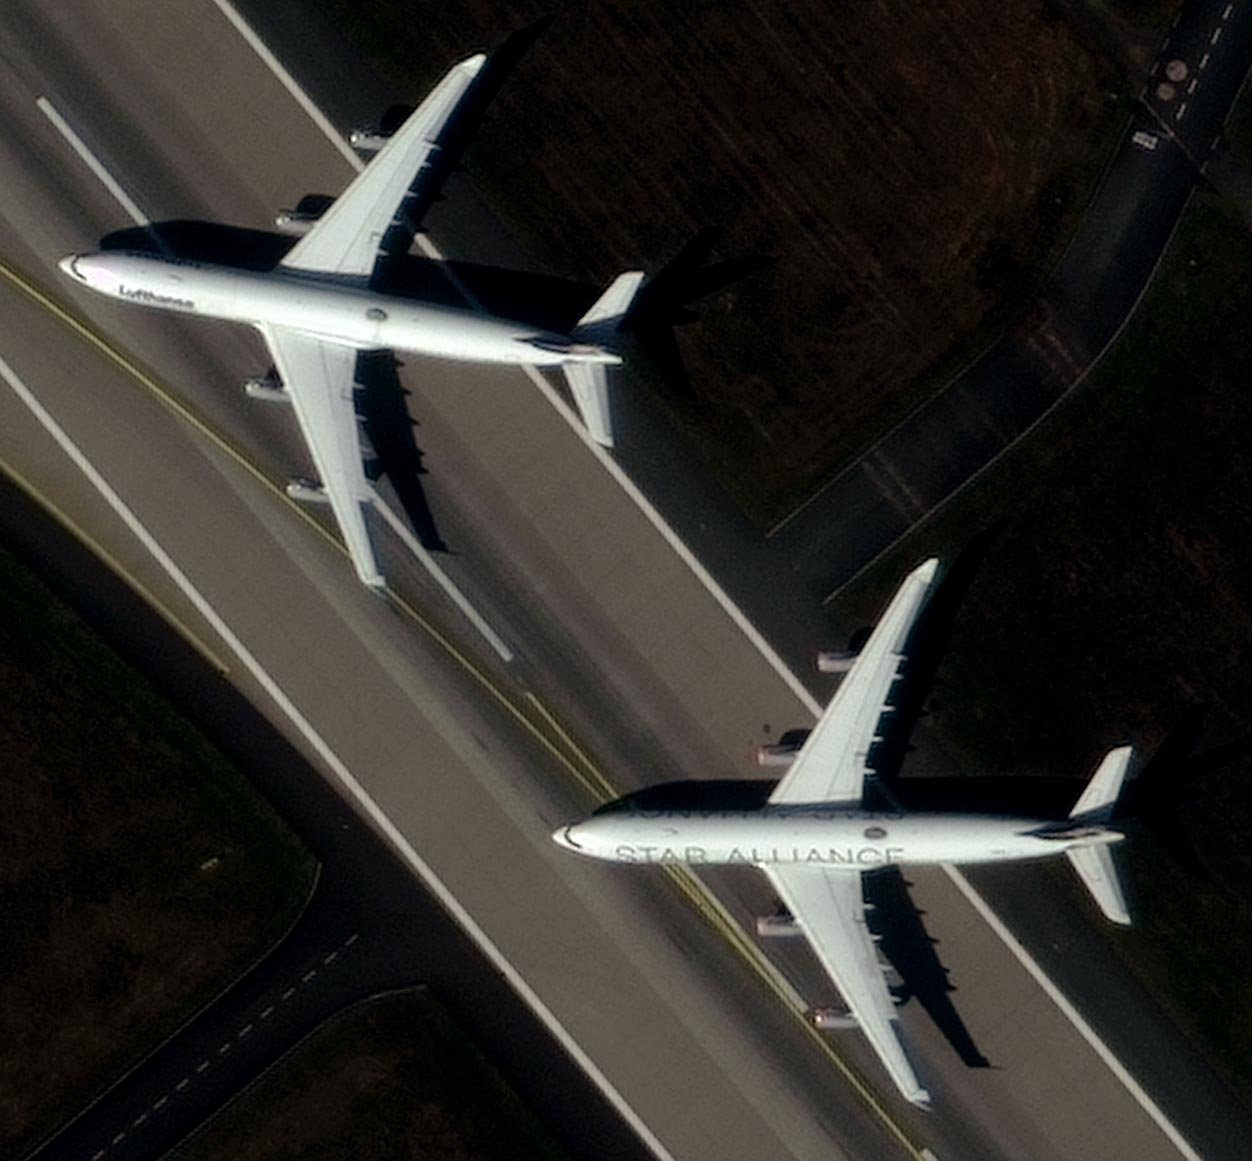 Image of two planes with 30cm resolution